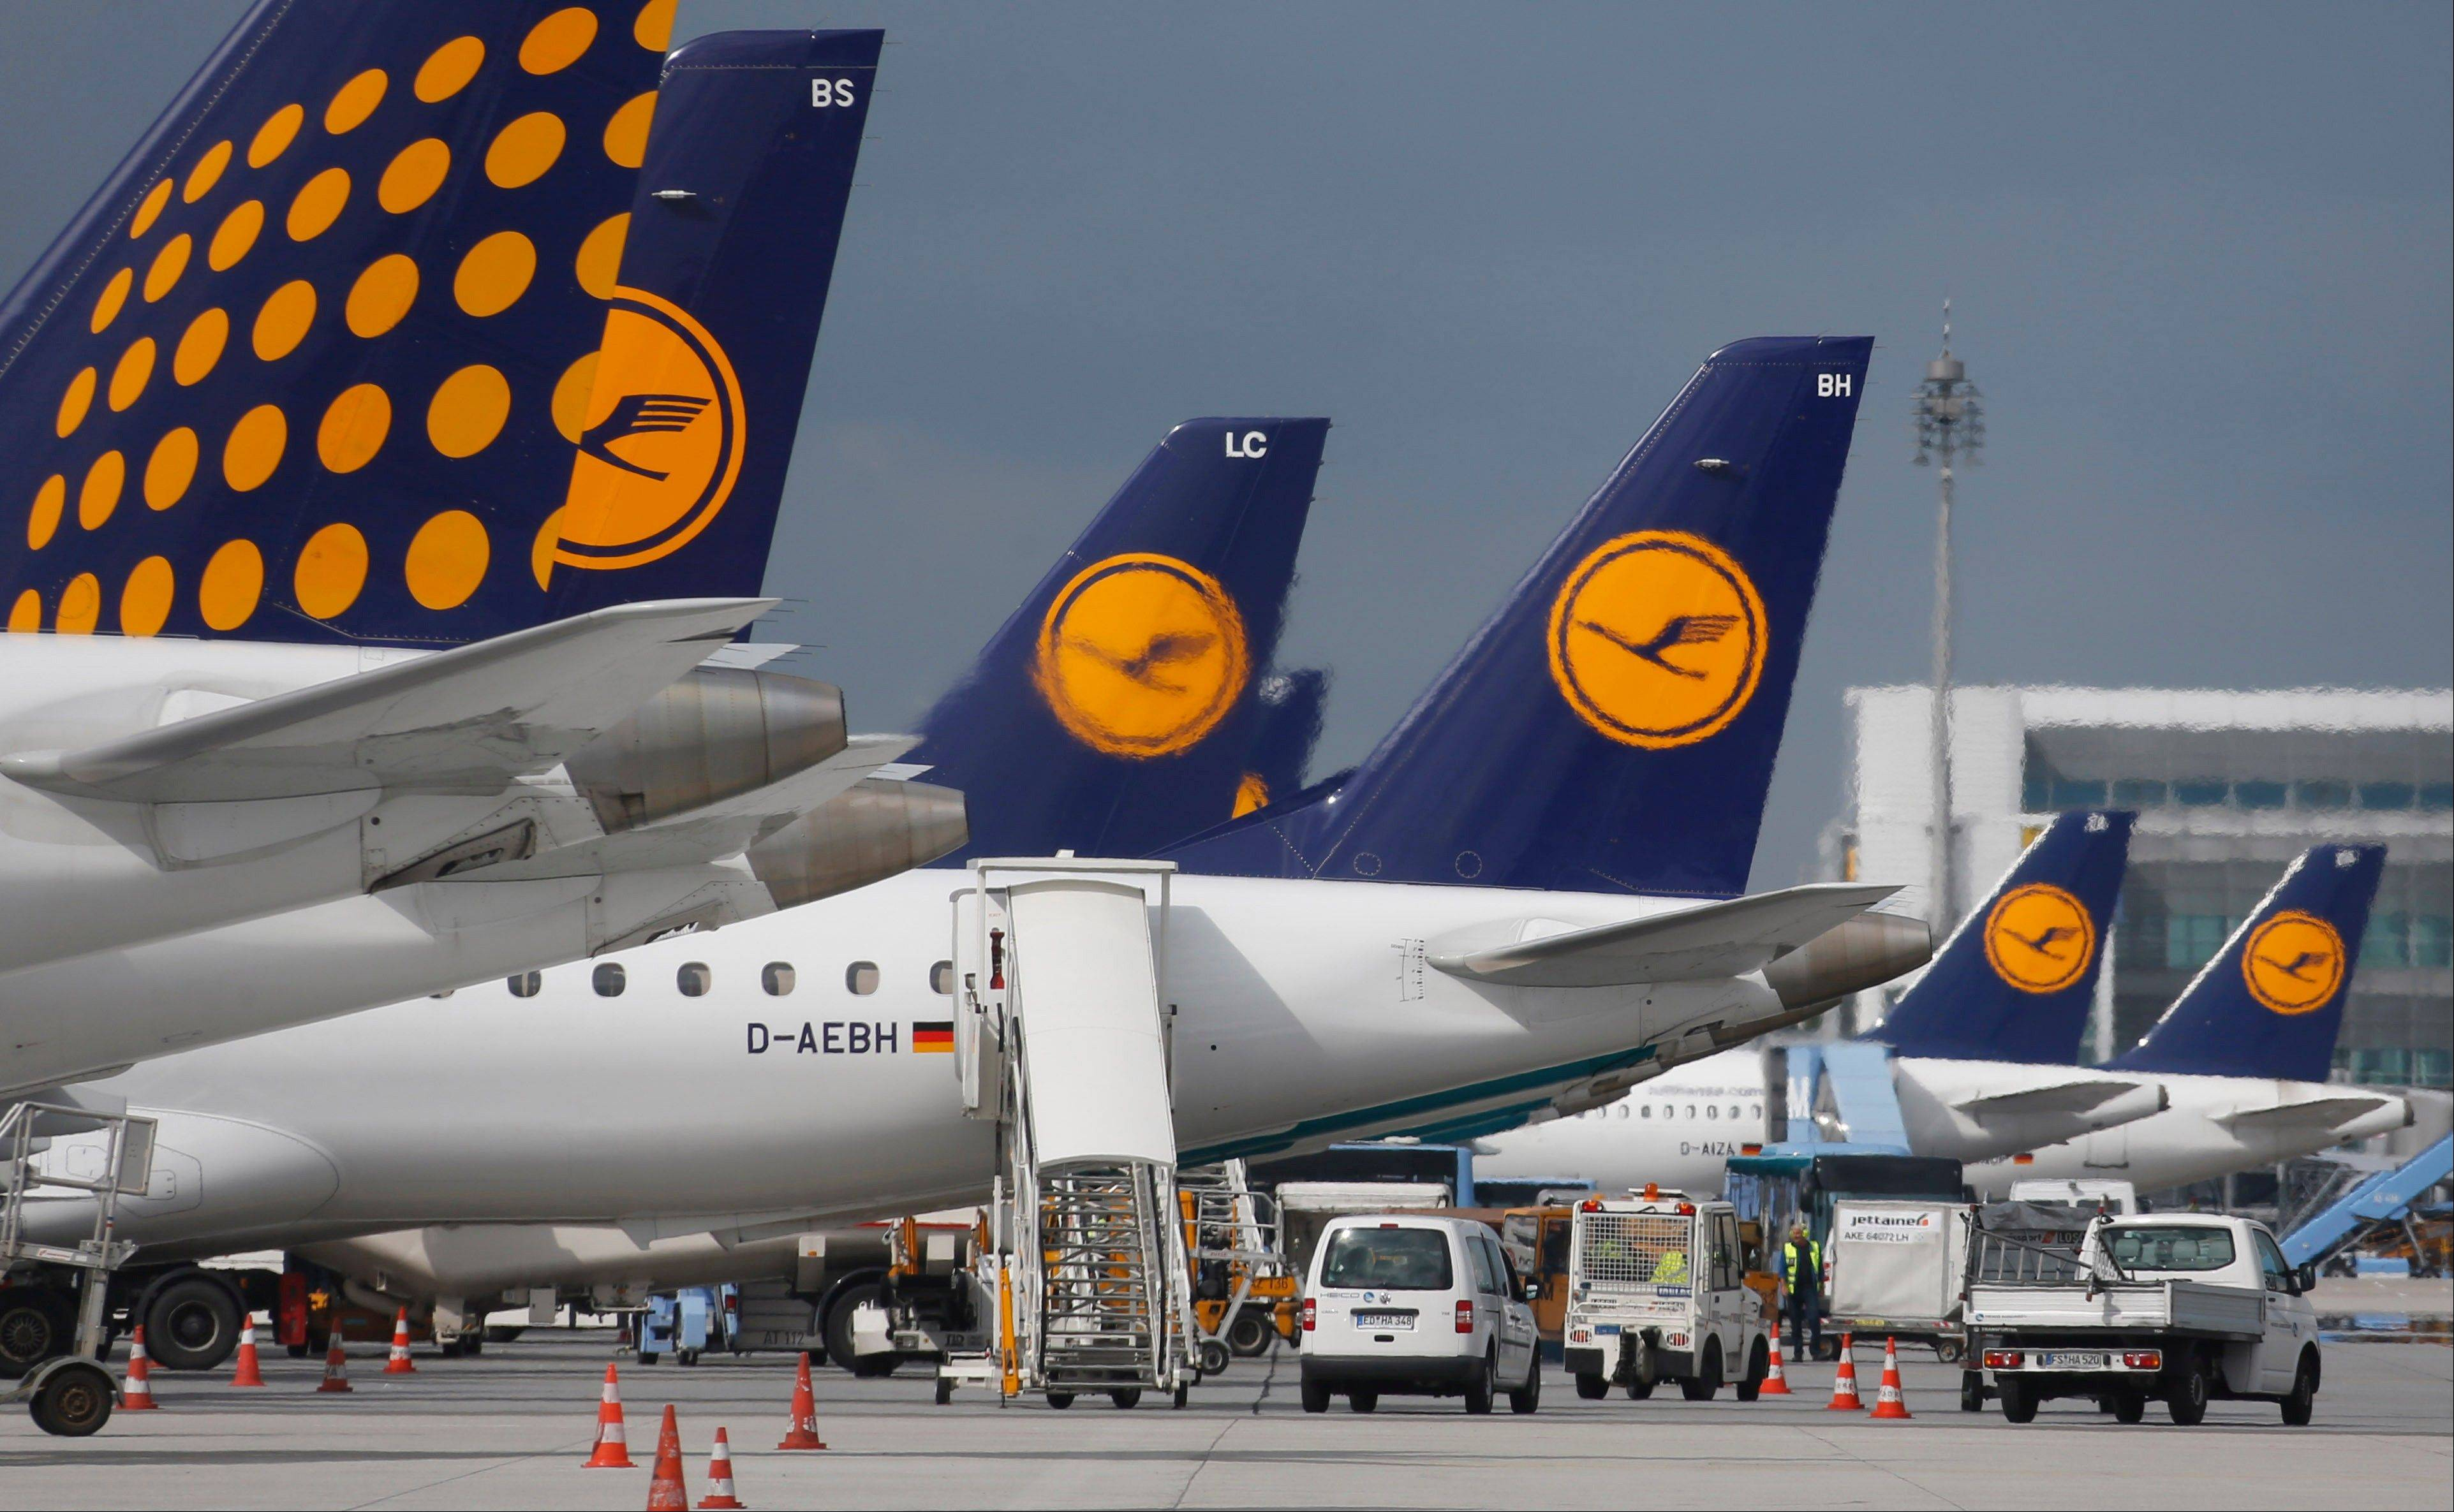 Lufthansa airplanes parked at the international airport in Munich, southern Germany. German airline Lufthansa is ordering 34 new jets from Boeing and 25 from European rival Airbus as it updates its long-haul fleet to make it more fuel efficient and lower costs.